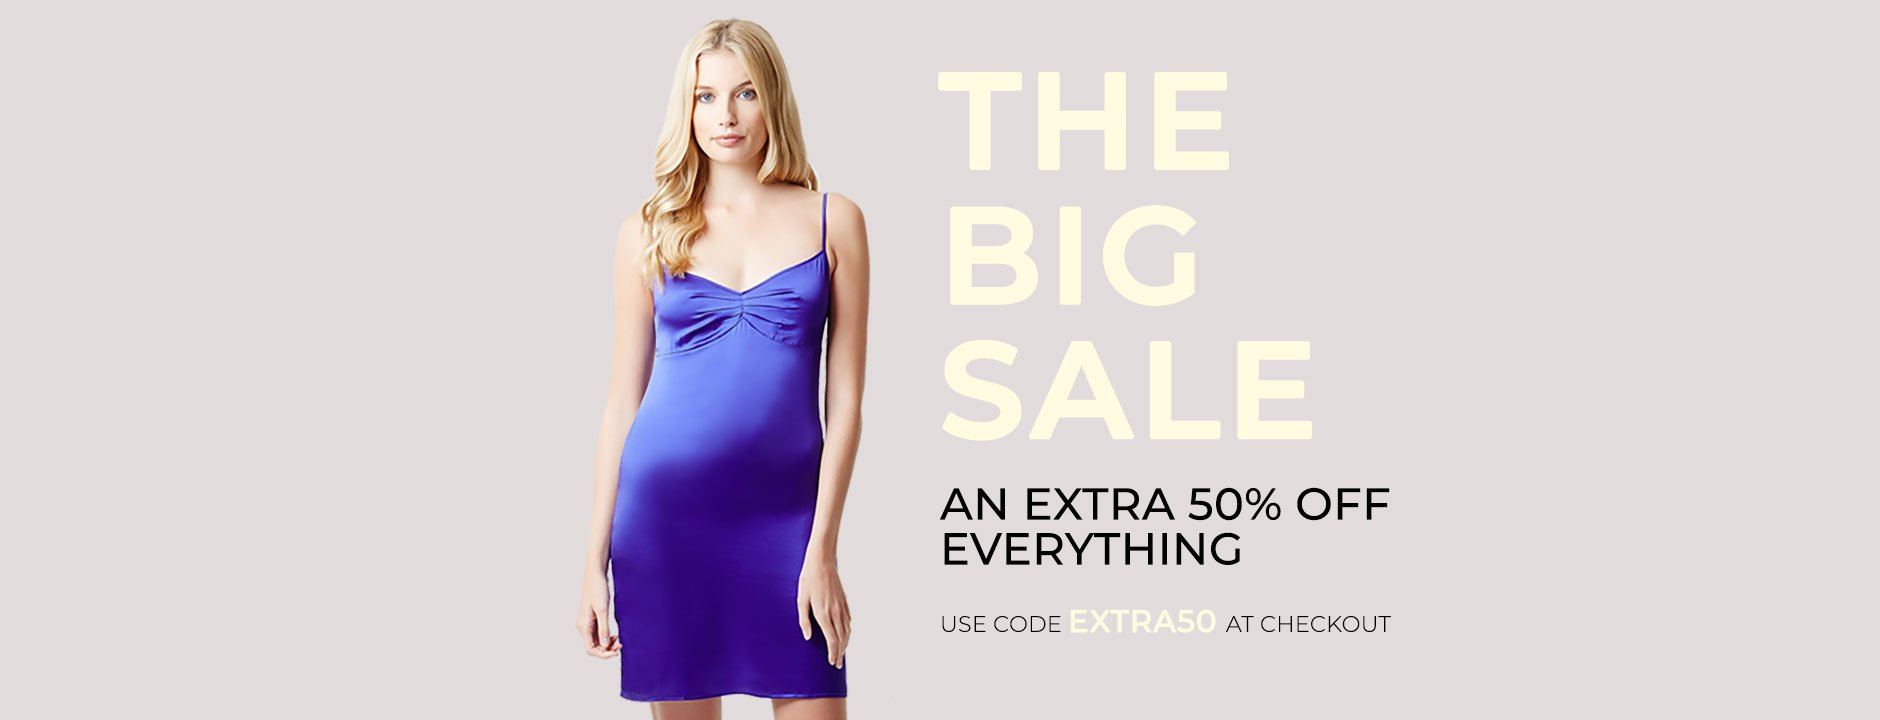 THE BIG SALE: An extra 50% off everything